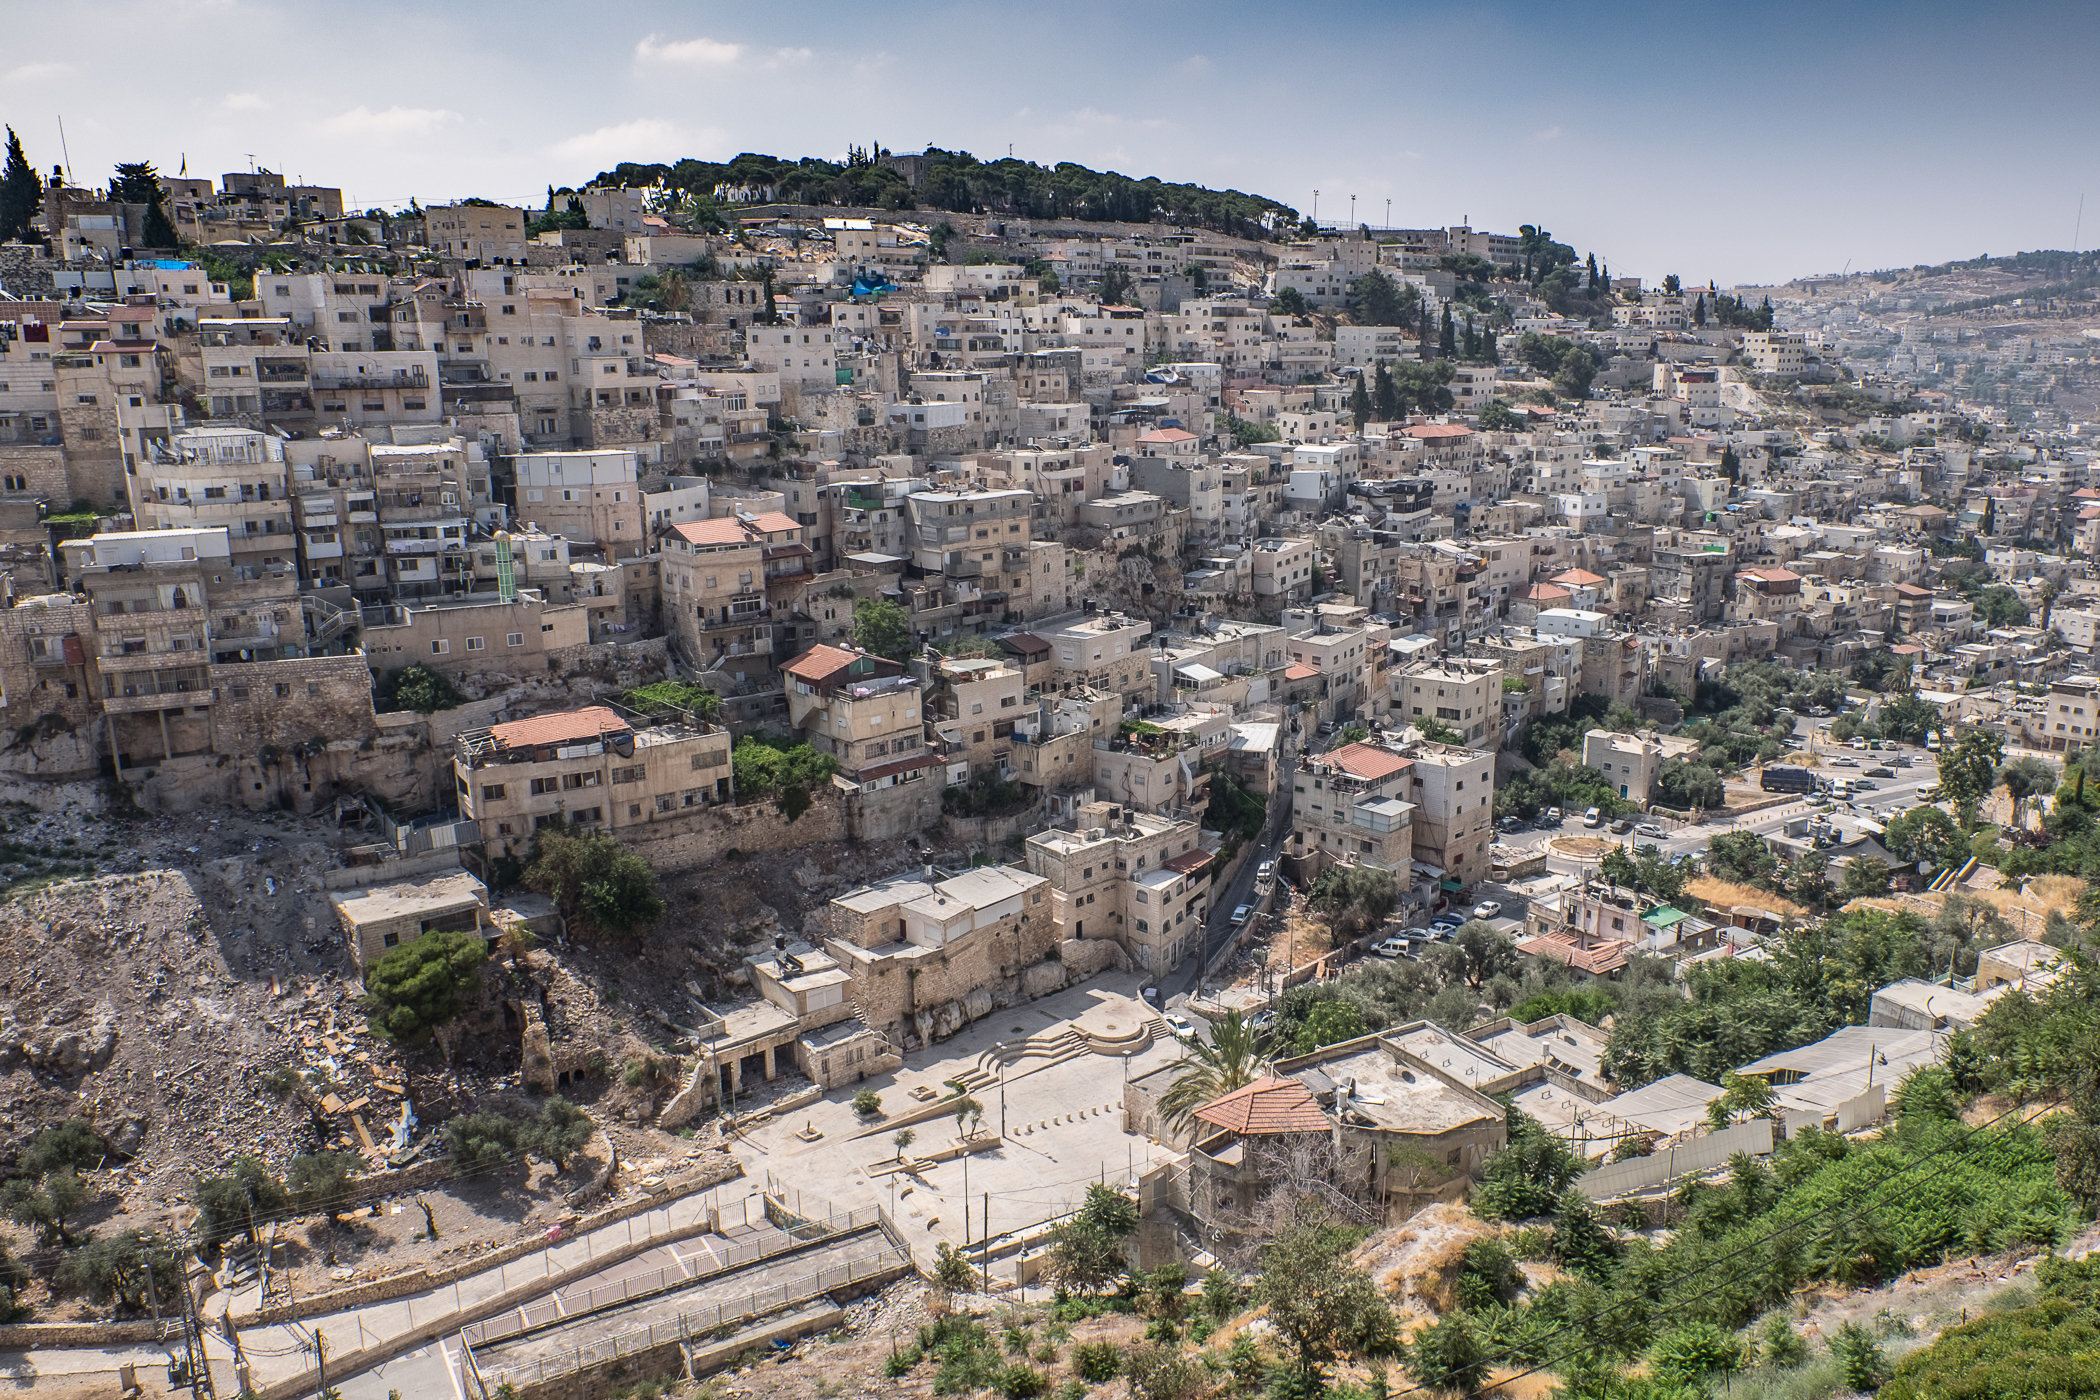 Silwan Arab neighborhood, Jerusalem